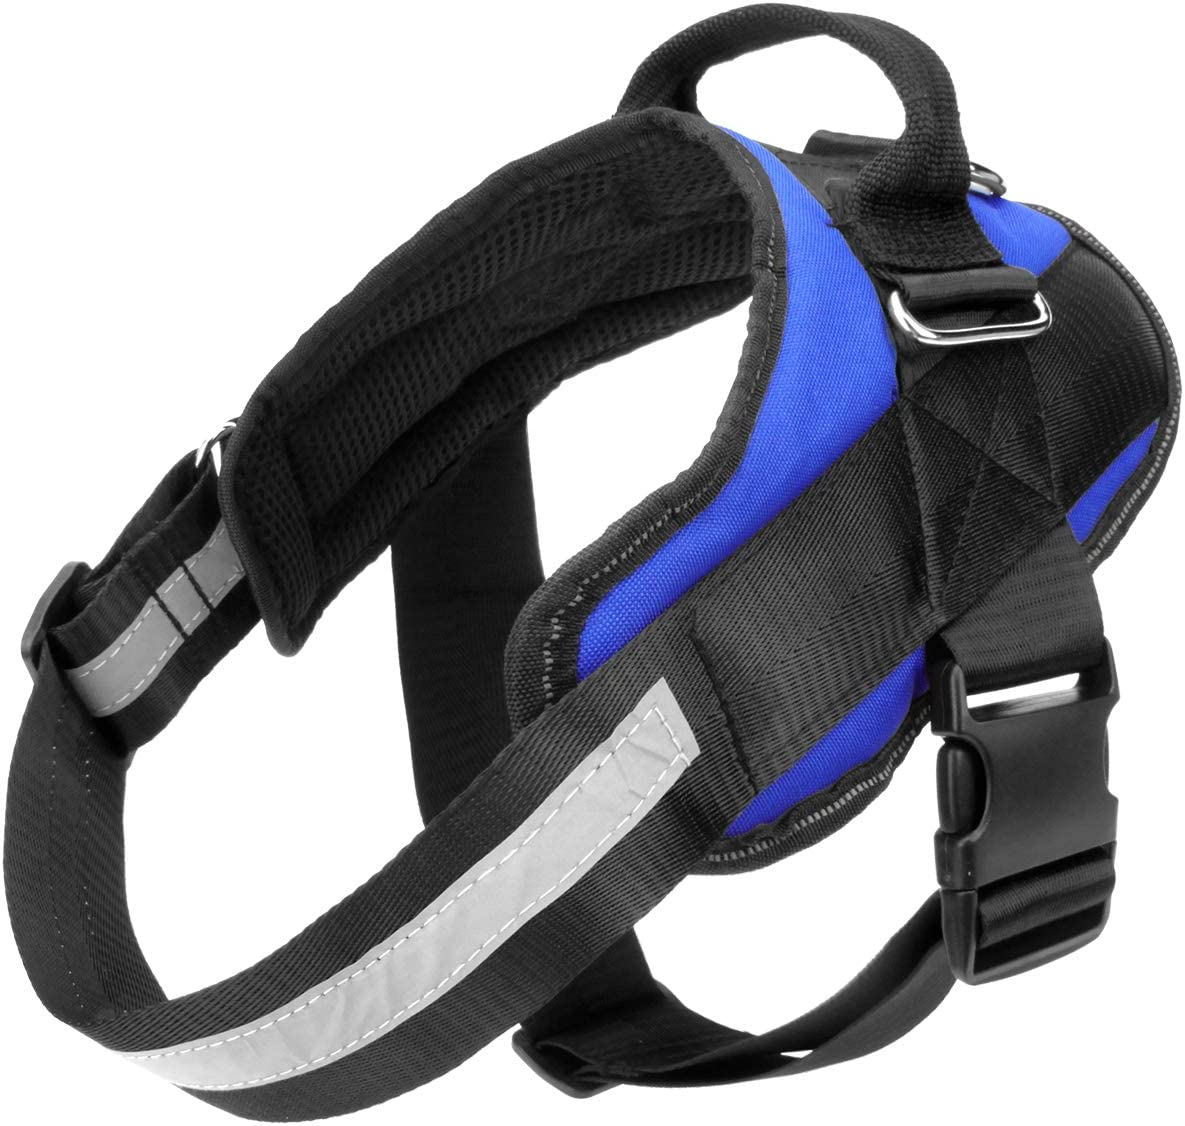 Bolux Service Dog Harness Reflective Breathable and Easy Adjust Pet Halters with Nylon Handle for Small Medium Large Dogs Tugging or Choking Easy On and Off Pet Vest Harness No More Pulling